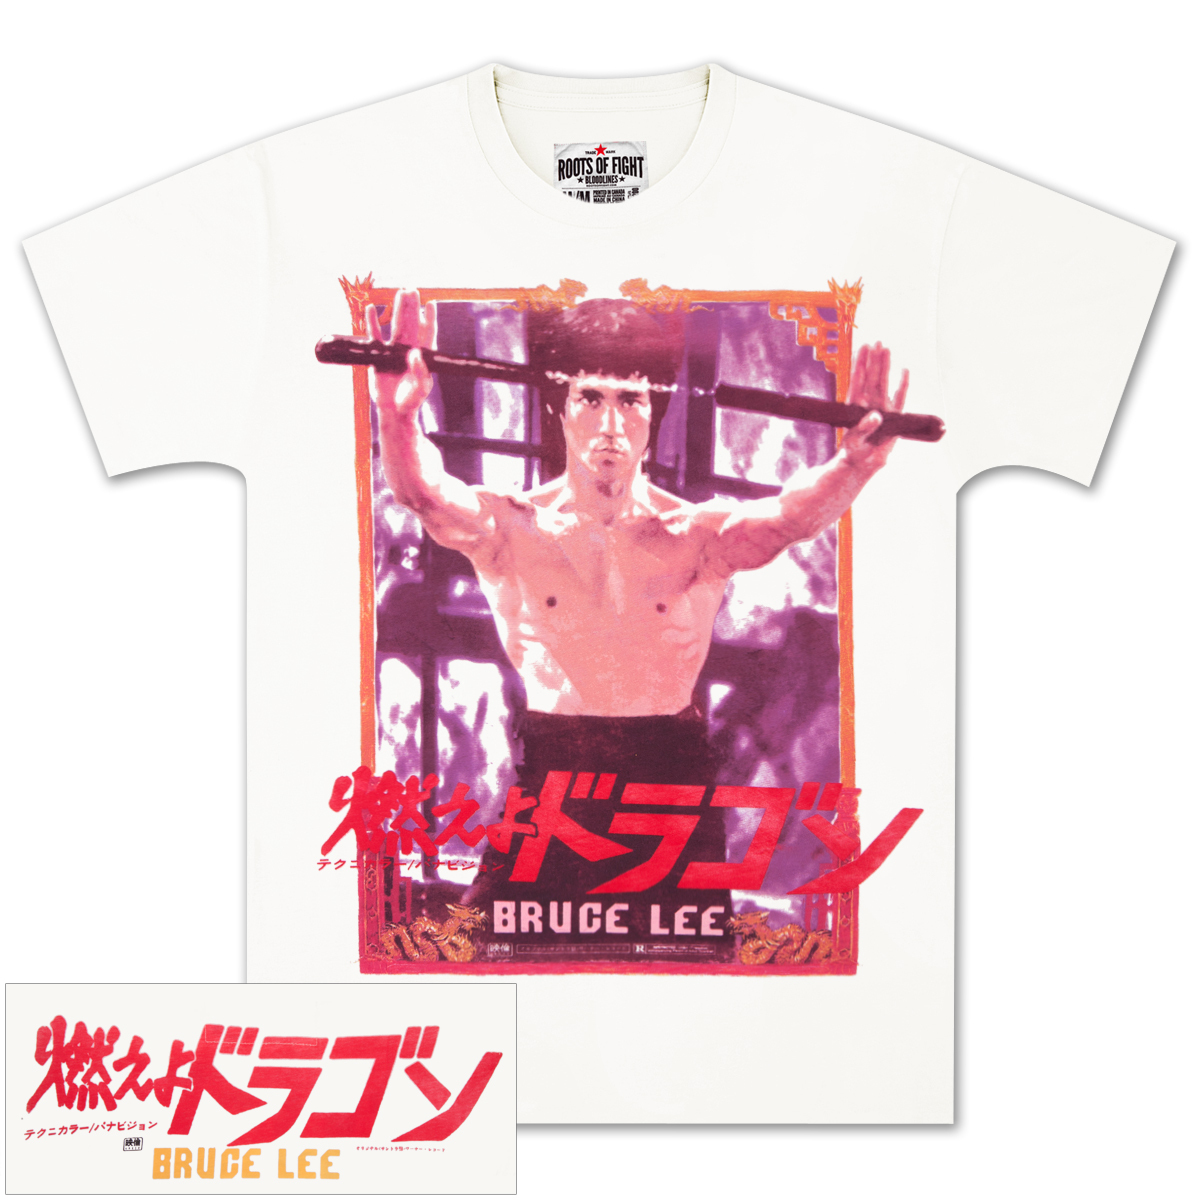 Bruce Lee Training T-Shirt by Roots of Fight